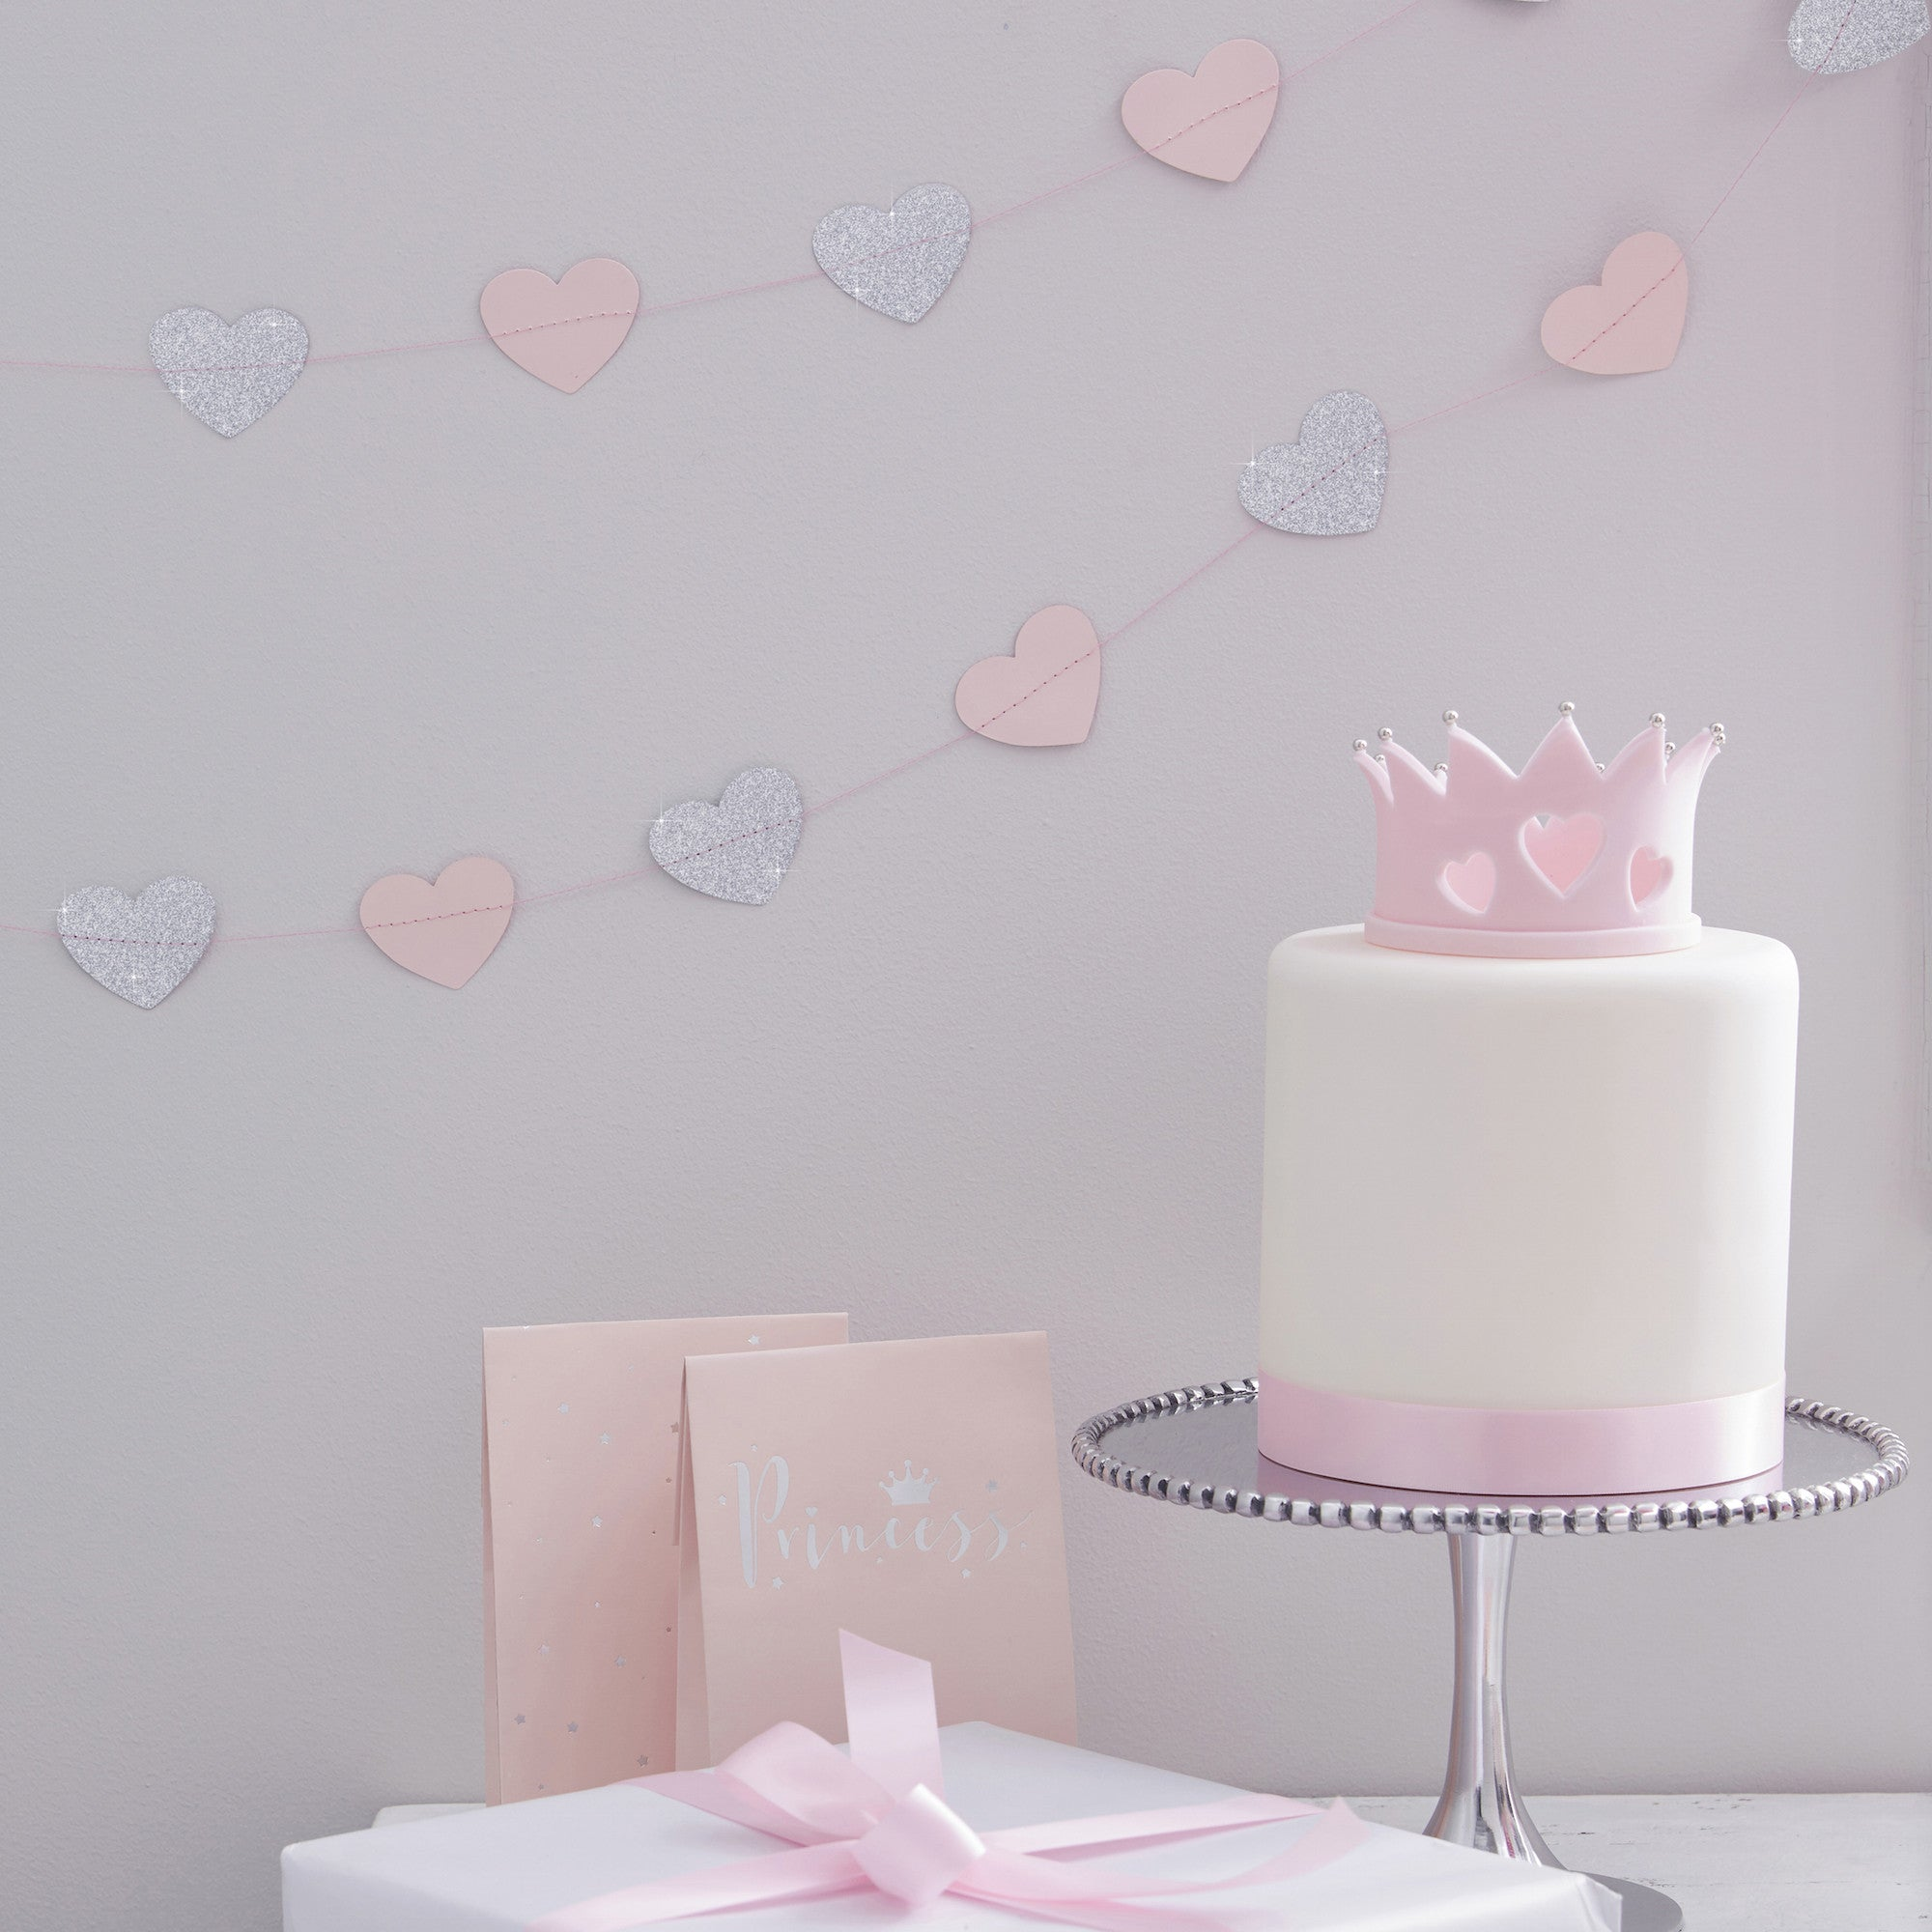 Pink & Silver Glitter Heart Garland - The Sweet Hostess  - 1